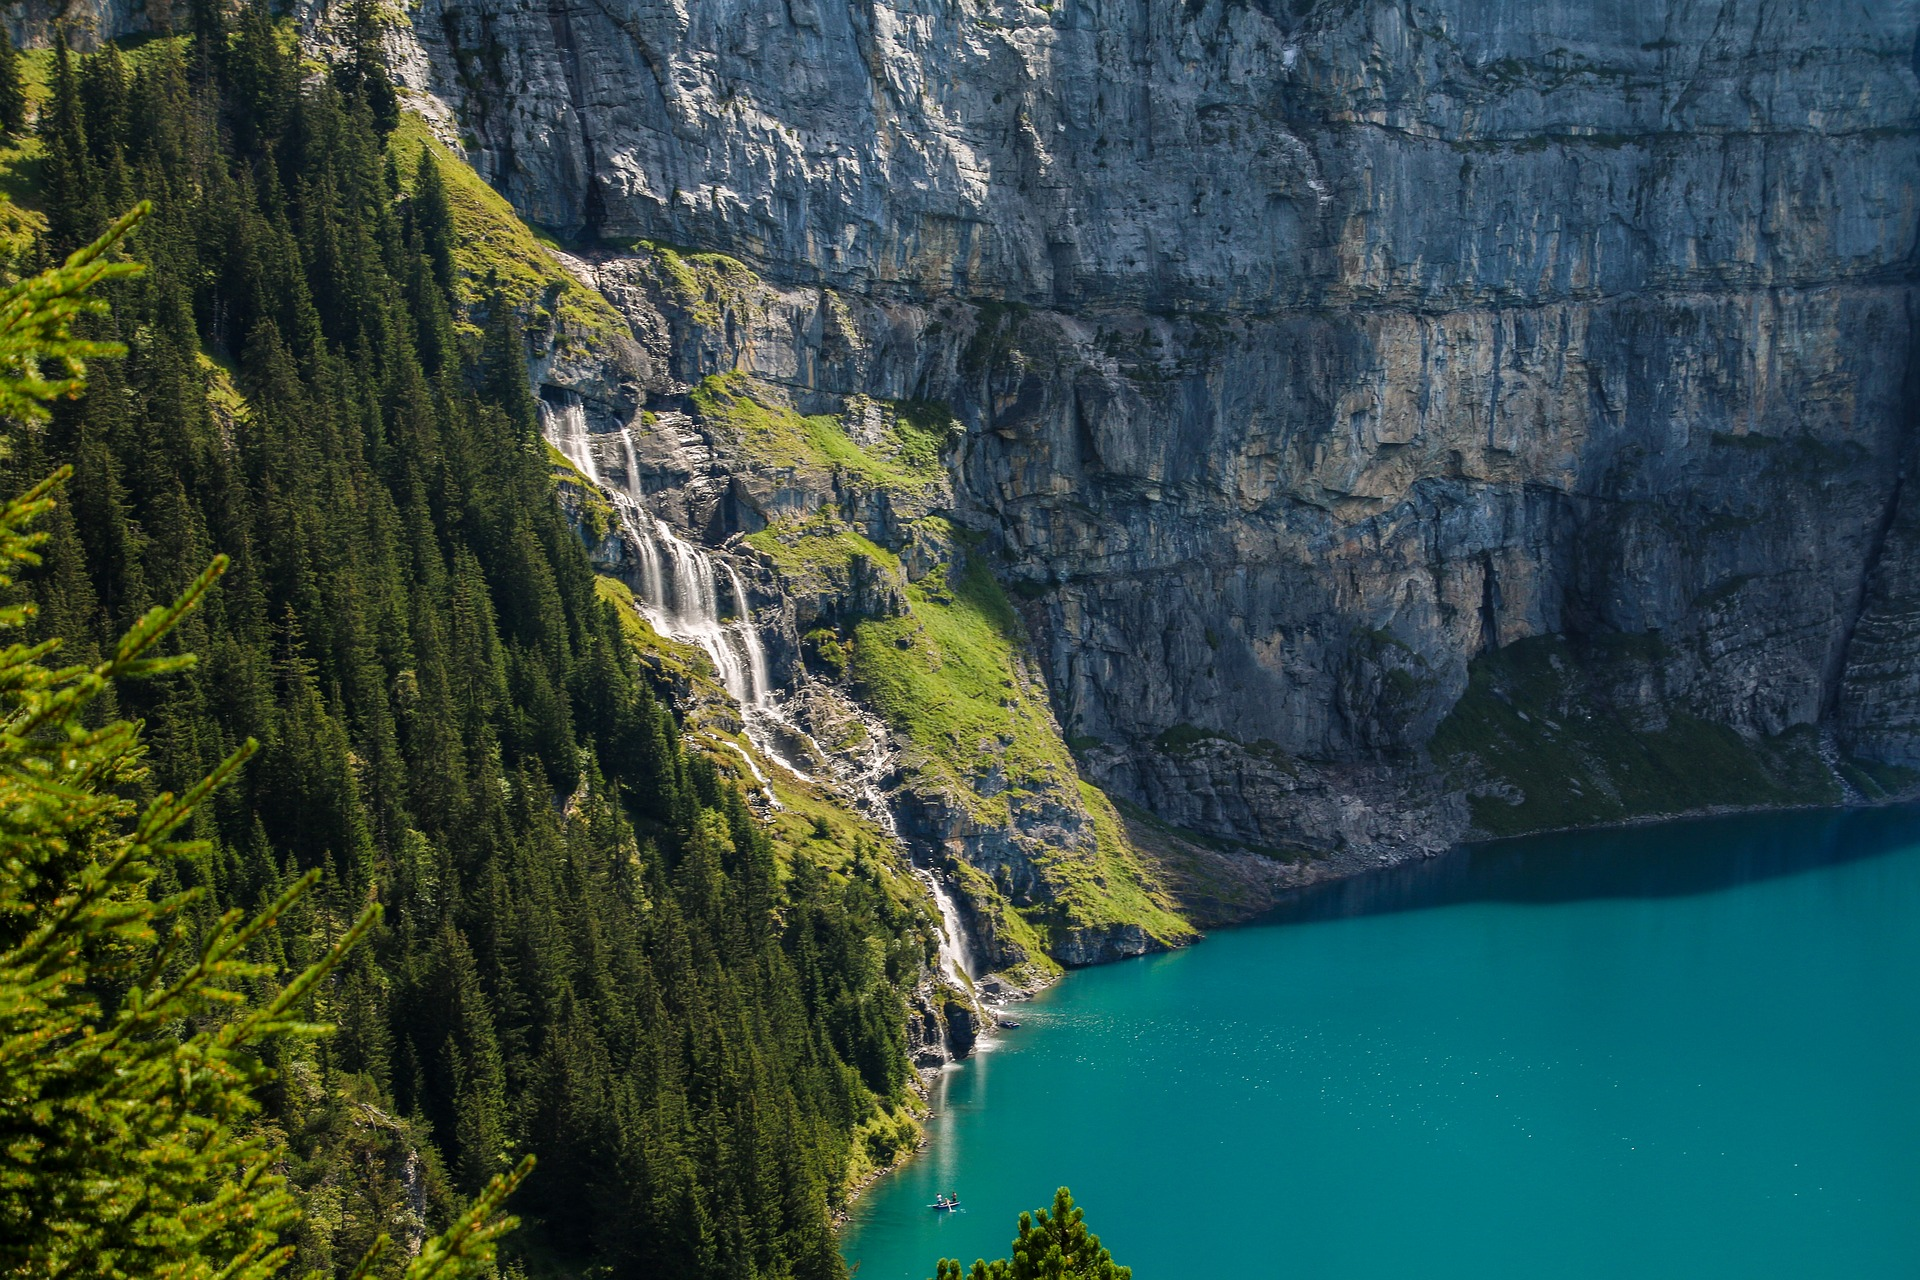 Waterfall at Oeschinensee, Oeschinen Lake, Bernese Oberland, Canton of Bern, Switzerland